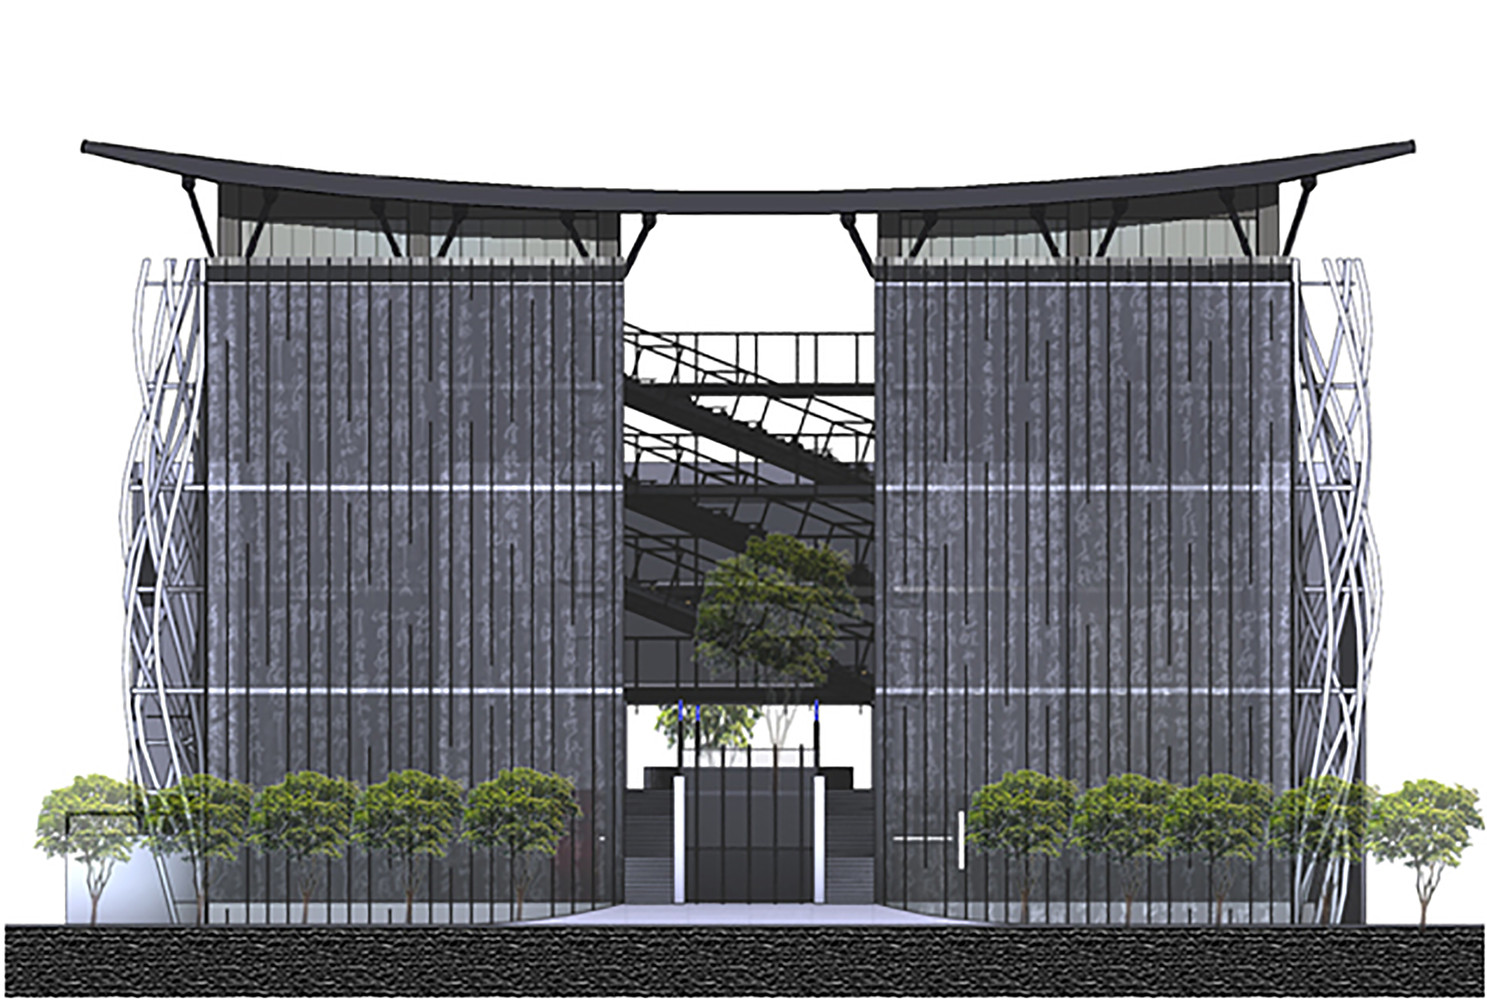 Taipei univeristy library elevation 02